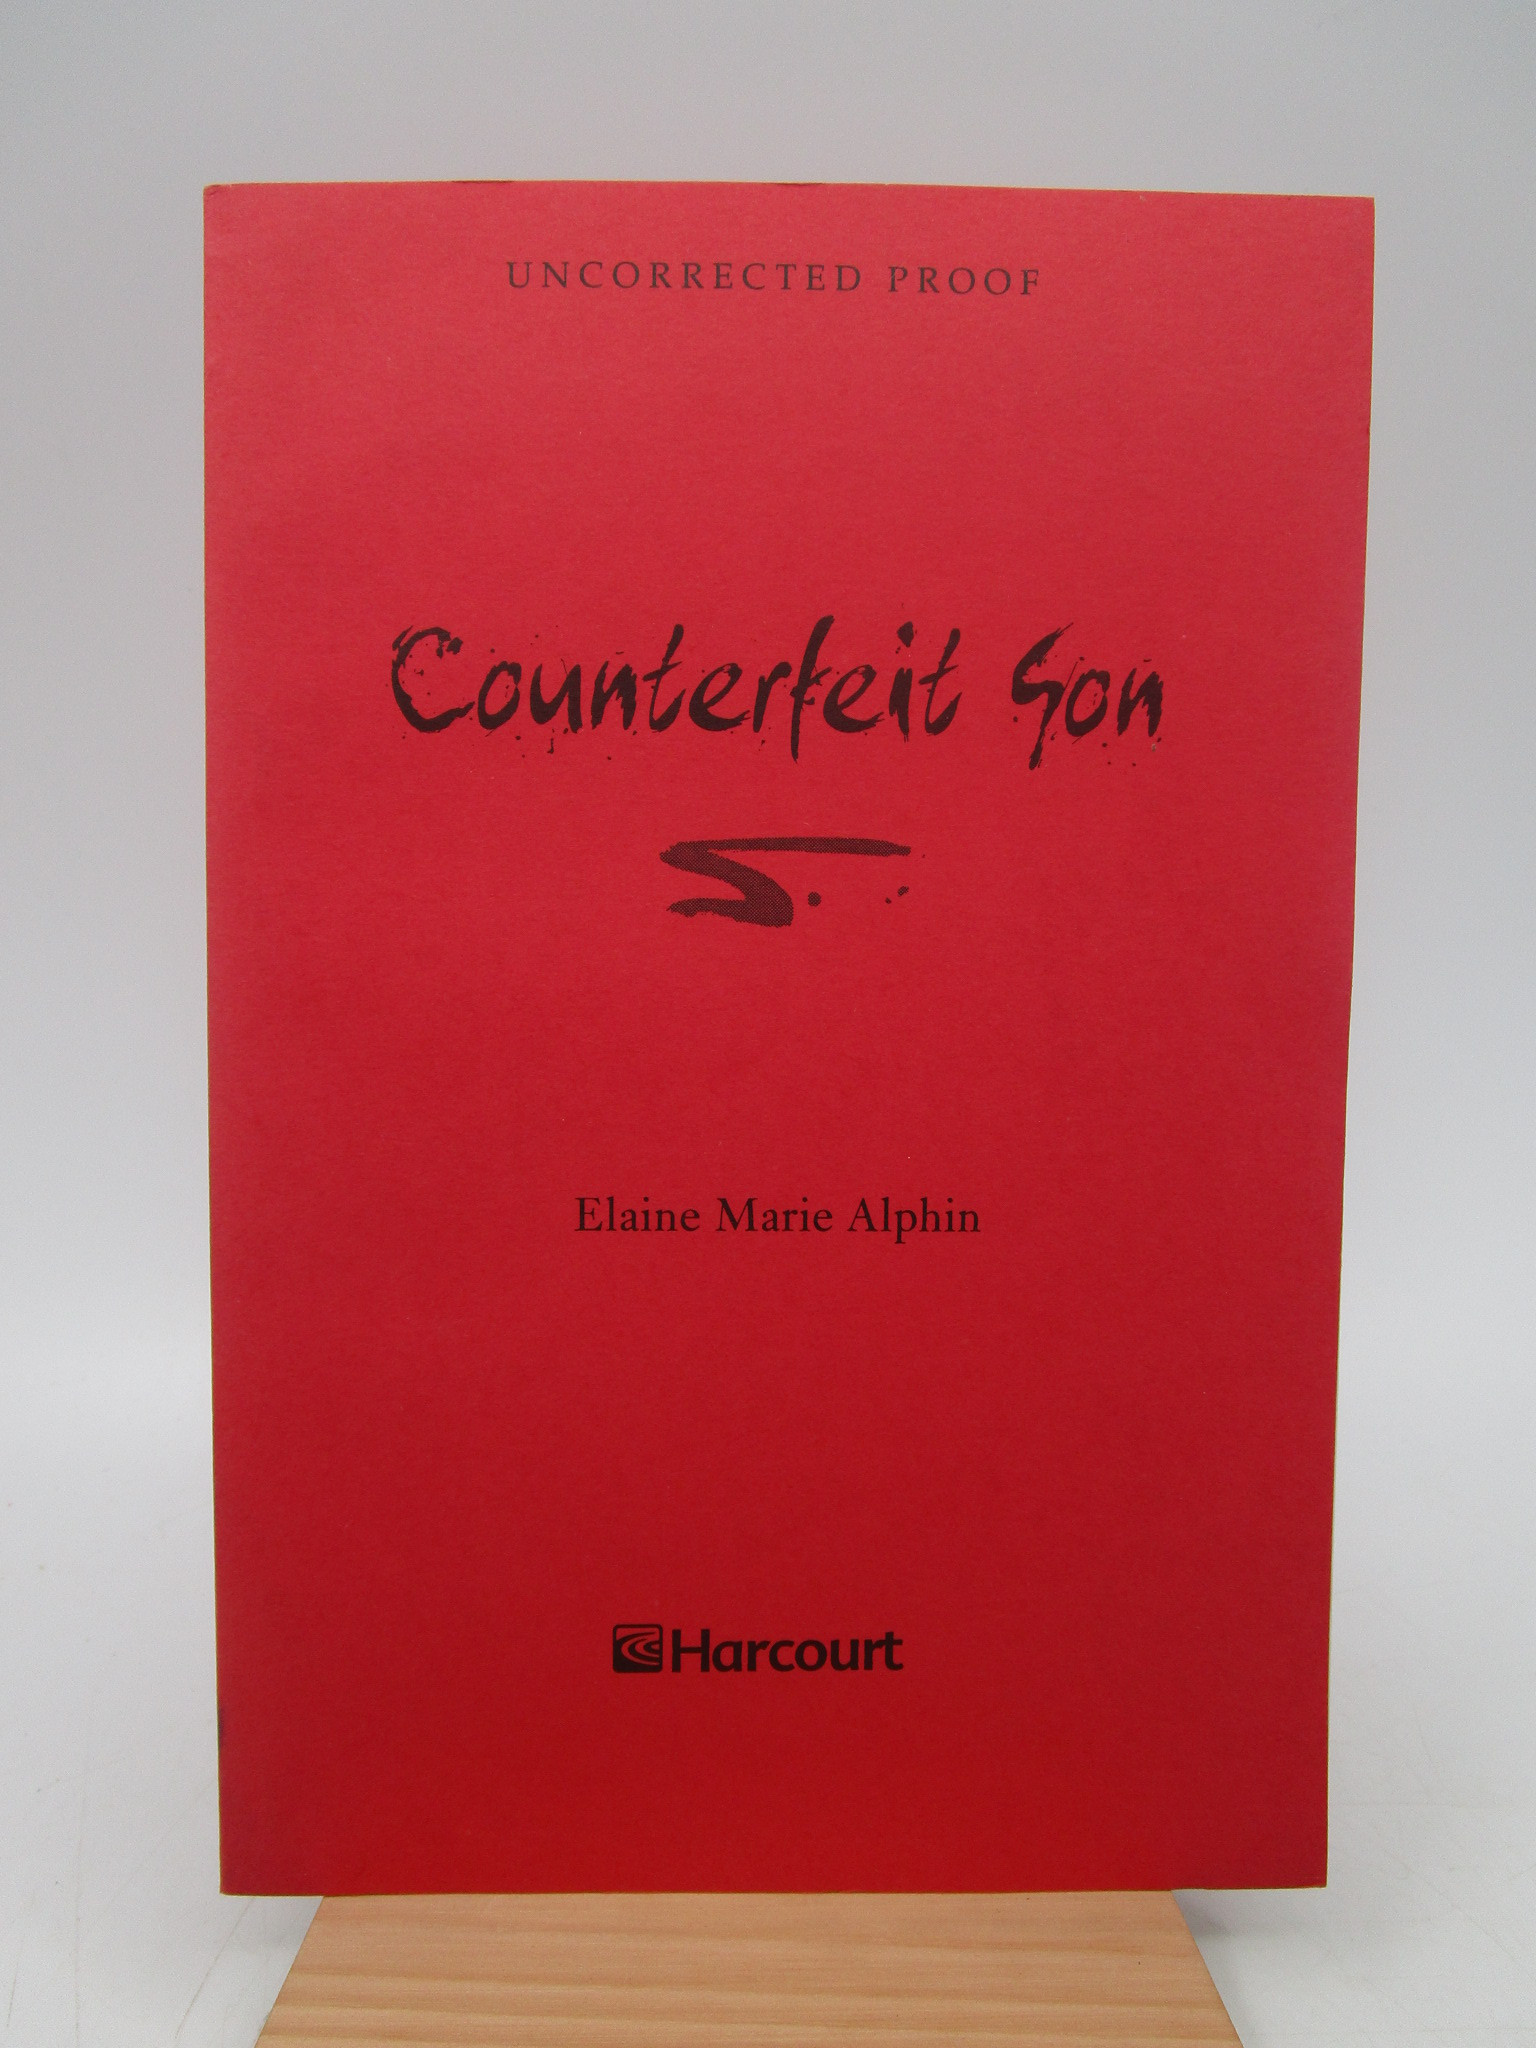 Image for Counterfeit Son (uncorrected proof)